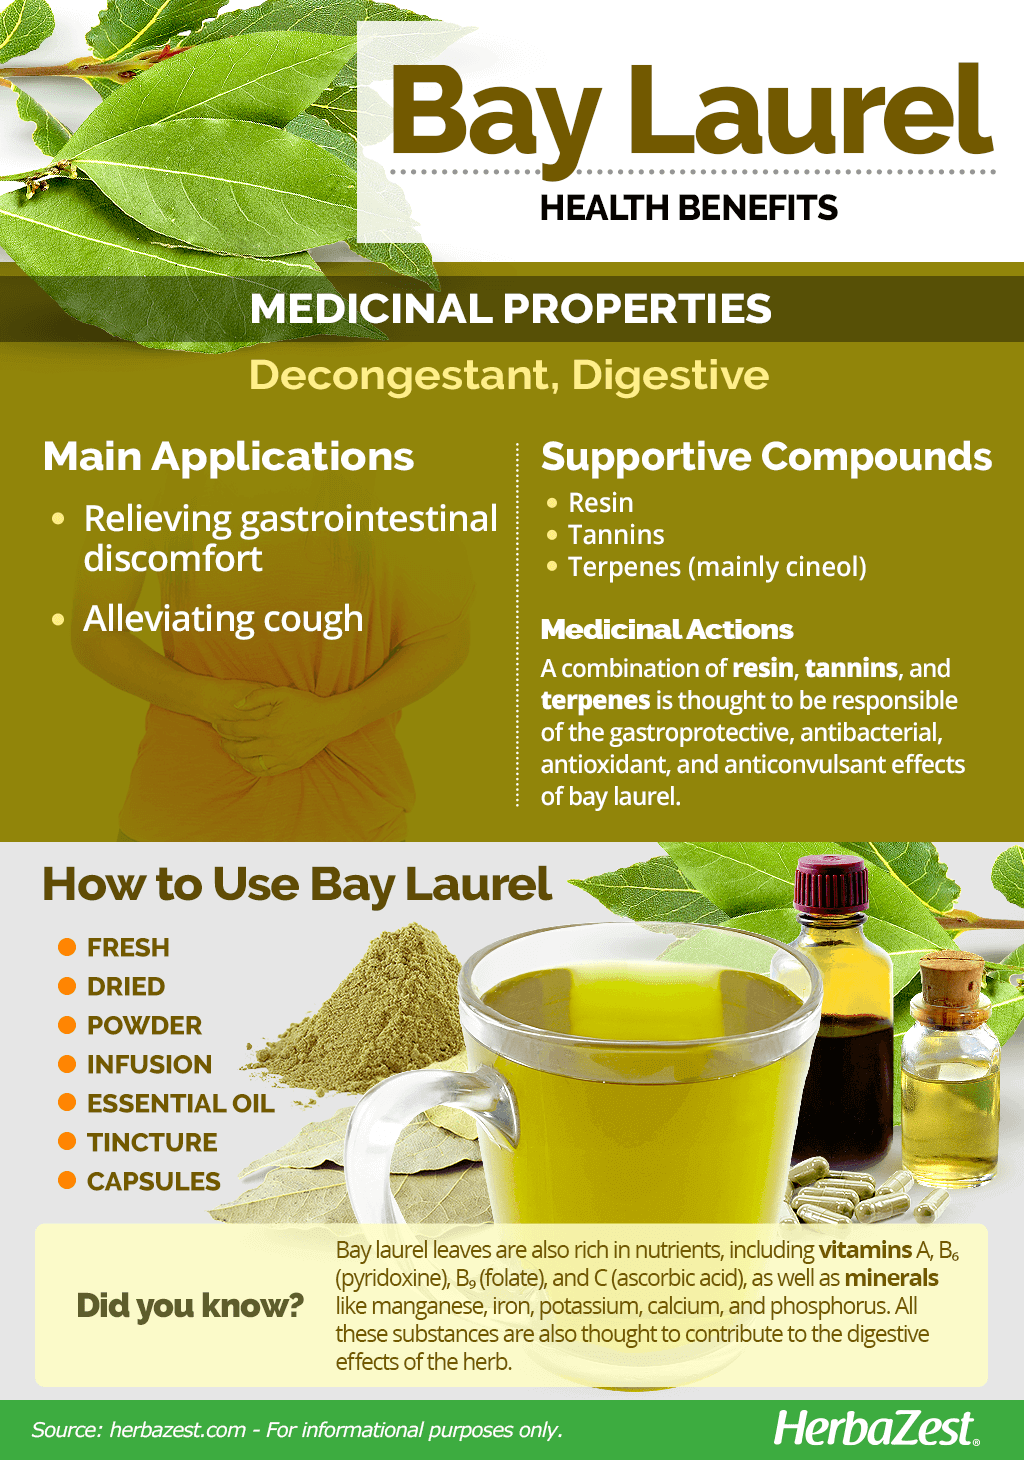 Bay Laurel Benefits